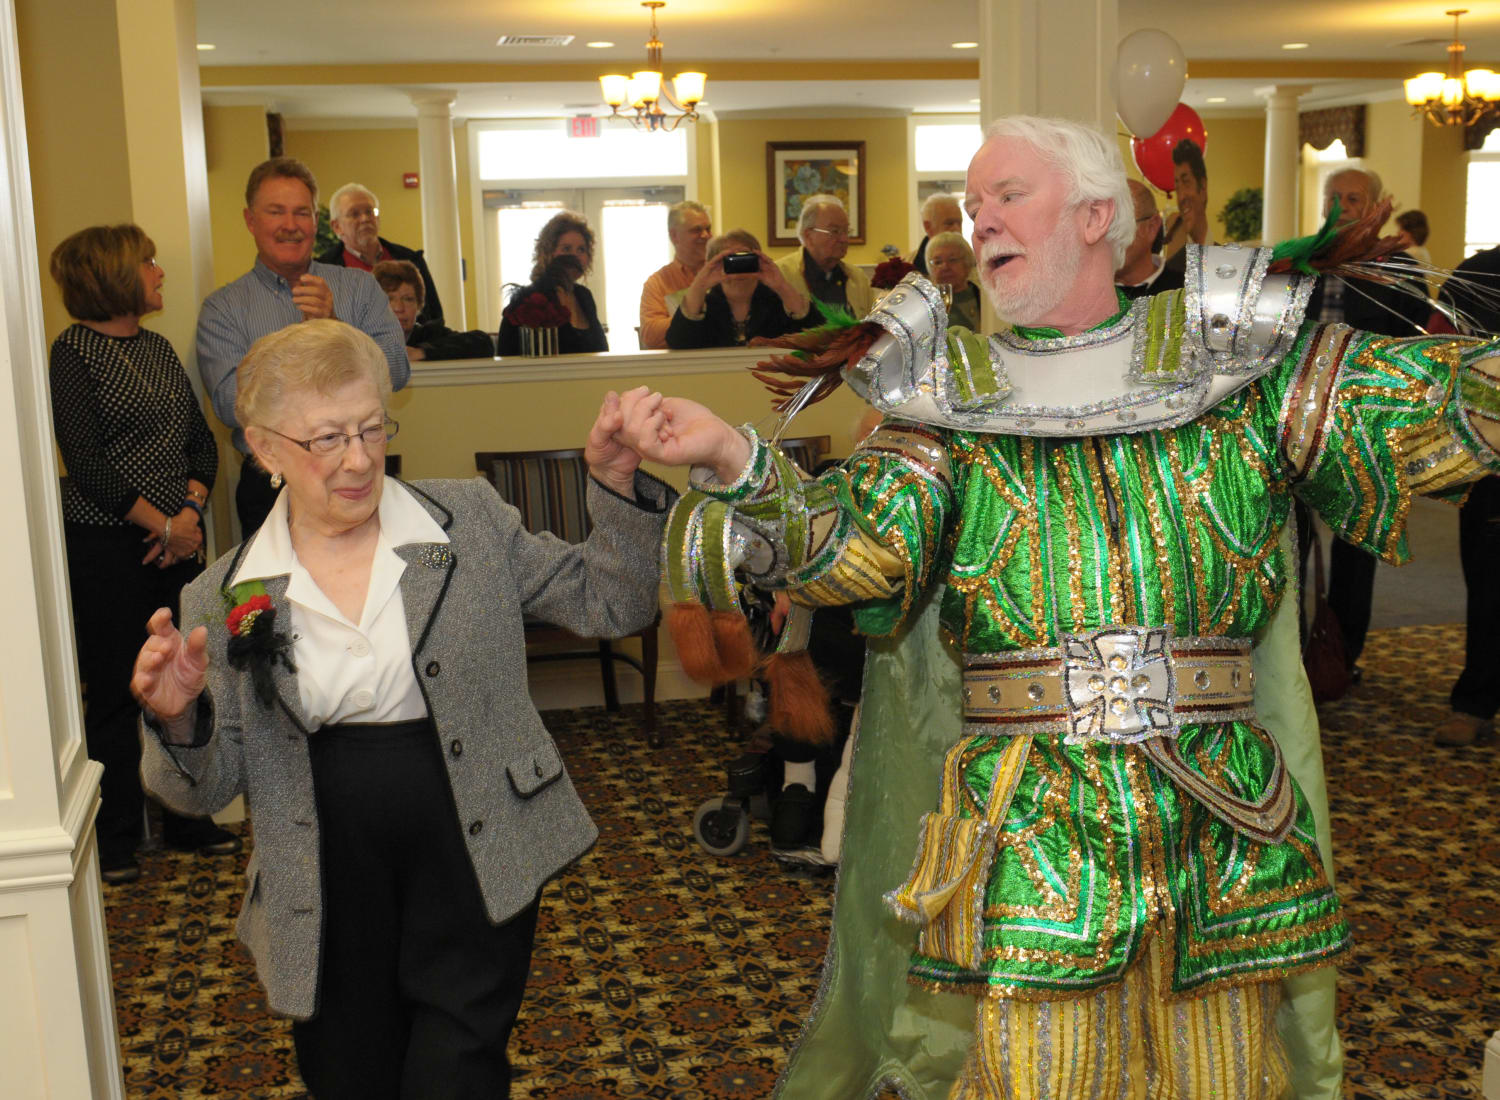 Resident dancing with someone dressed as a king at The Birches at Newtown in Newtown, Pennsylvania